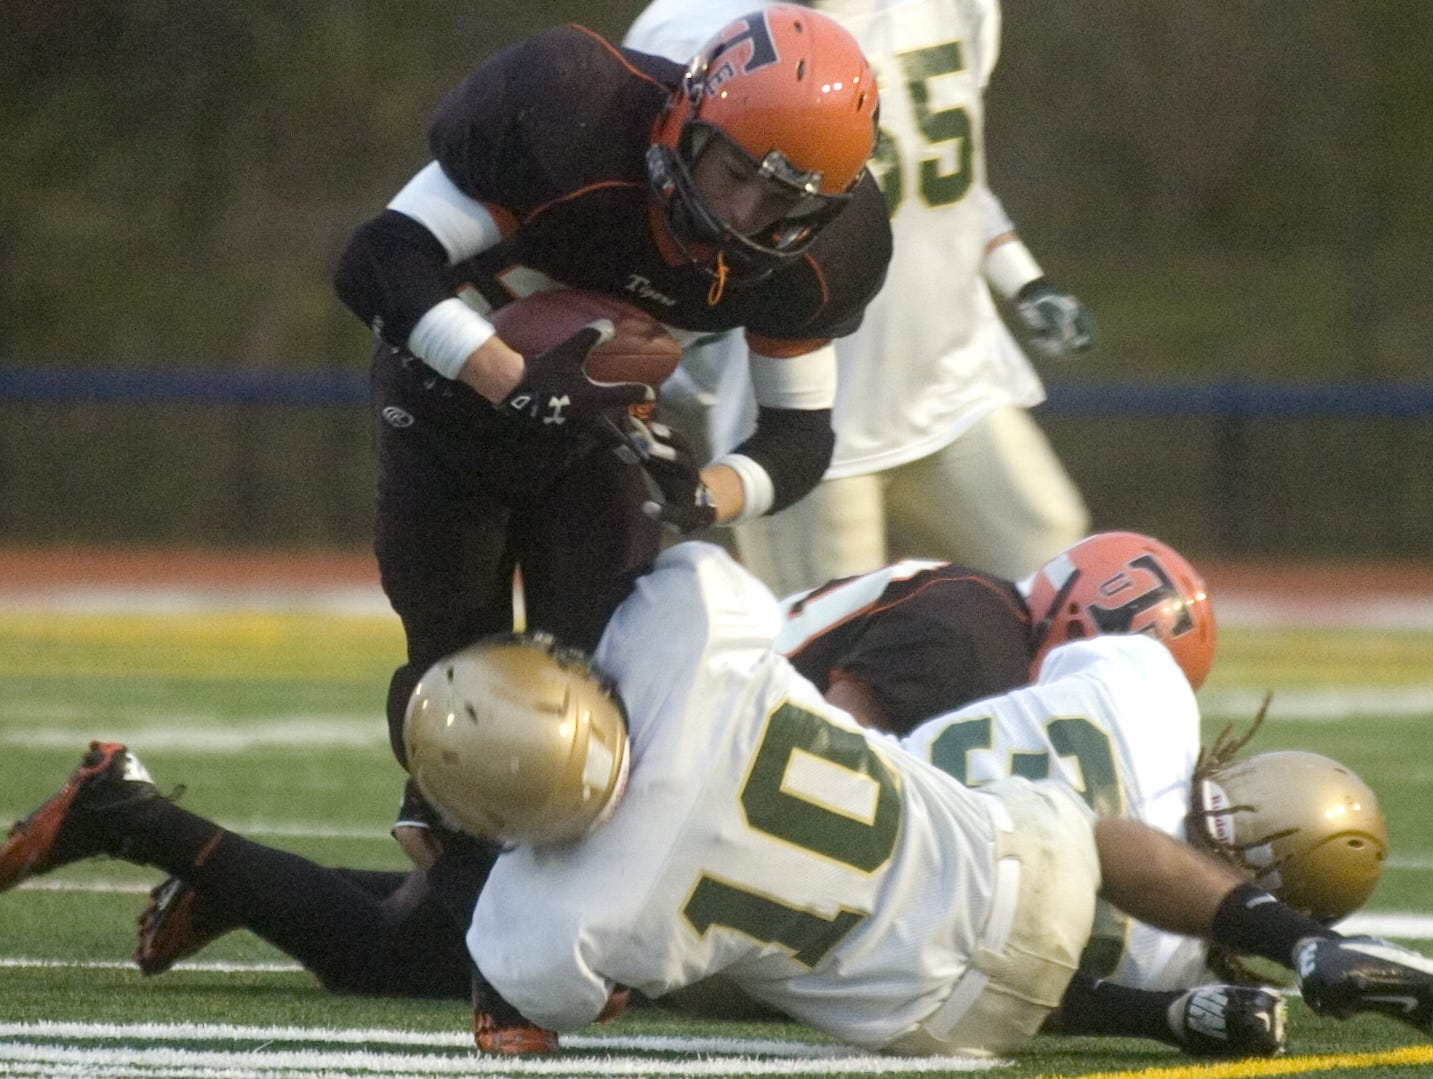 In 2012, Vestal's Mike Chewens trips up Union-Endicott's Michael Cheslock in the first half Friday night at Binghamton Alumni Stadium. Chewens kicked a 20-yard field goal in the first half Vestal's only points of the game.